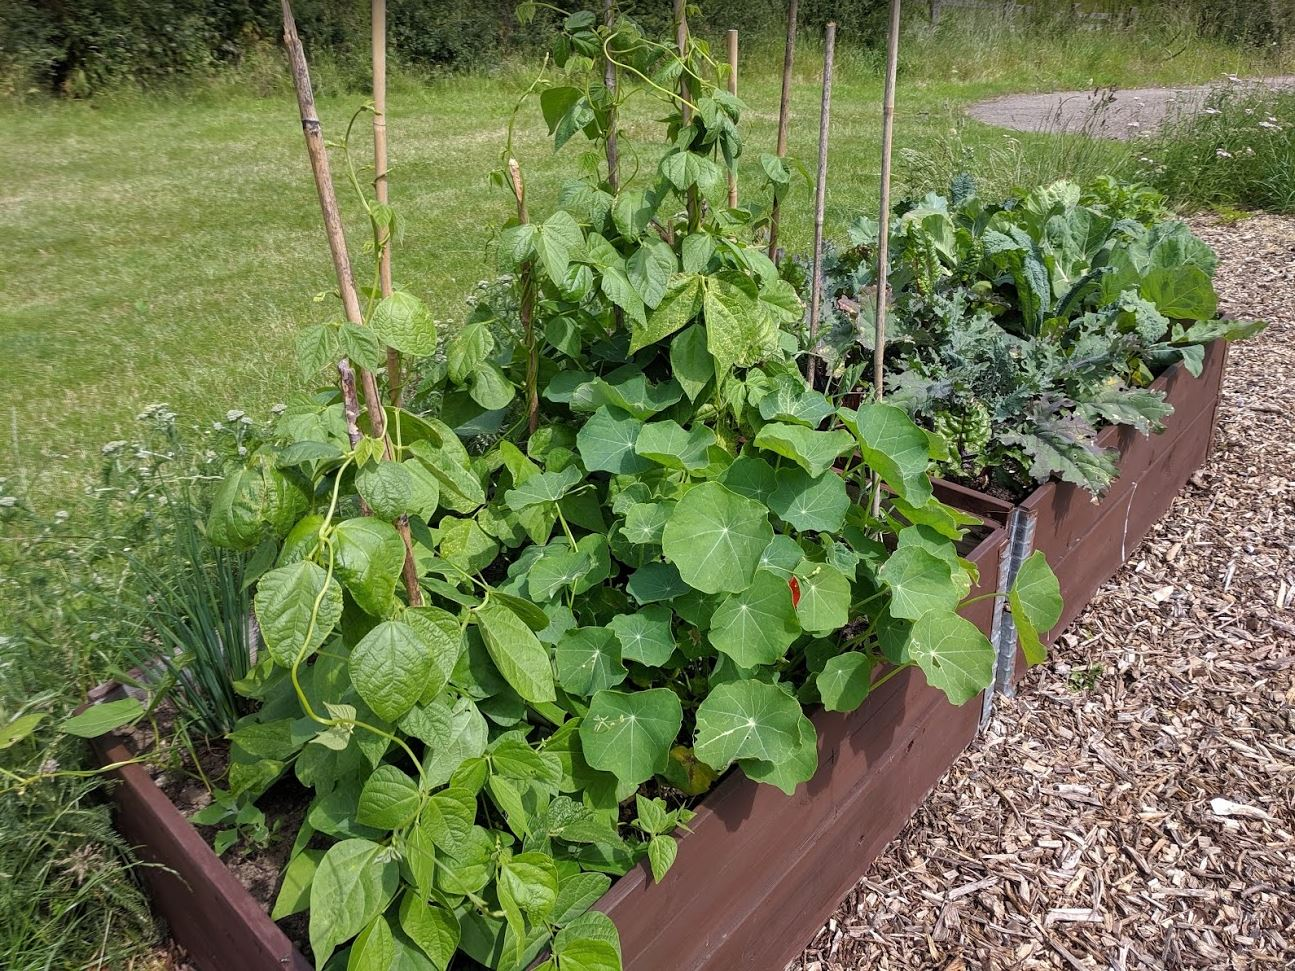 Growing peas, beans, kale and cabbage